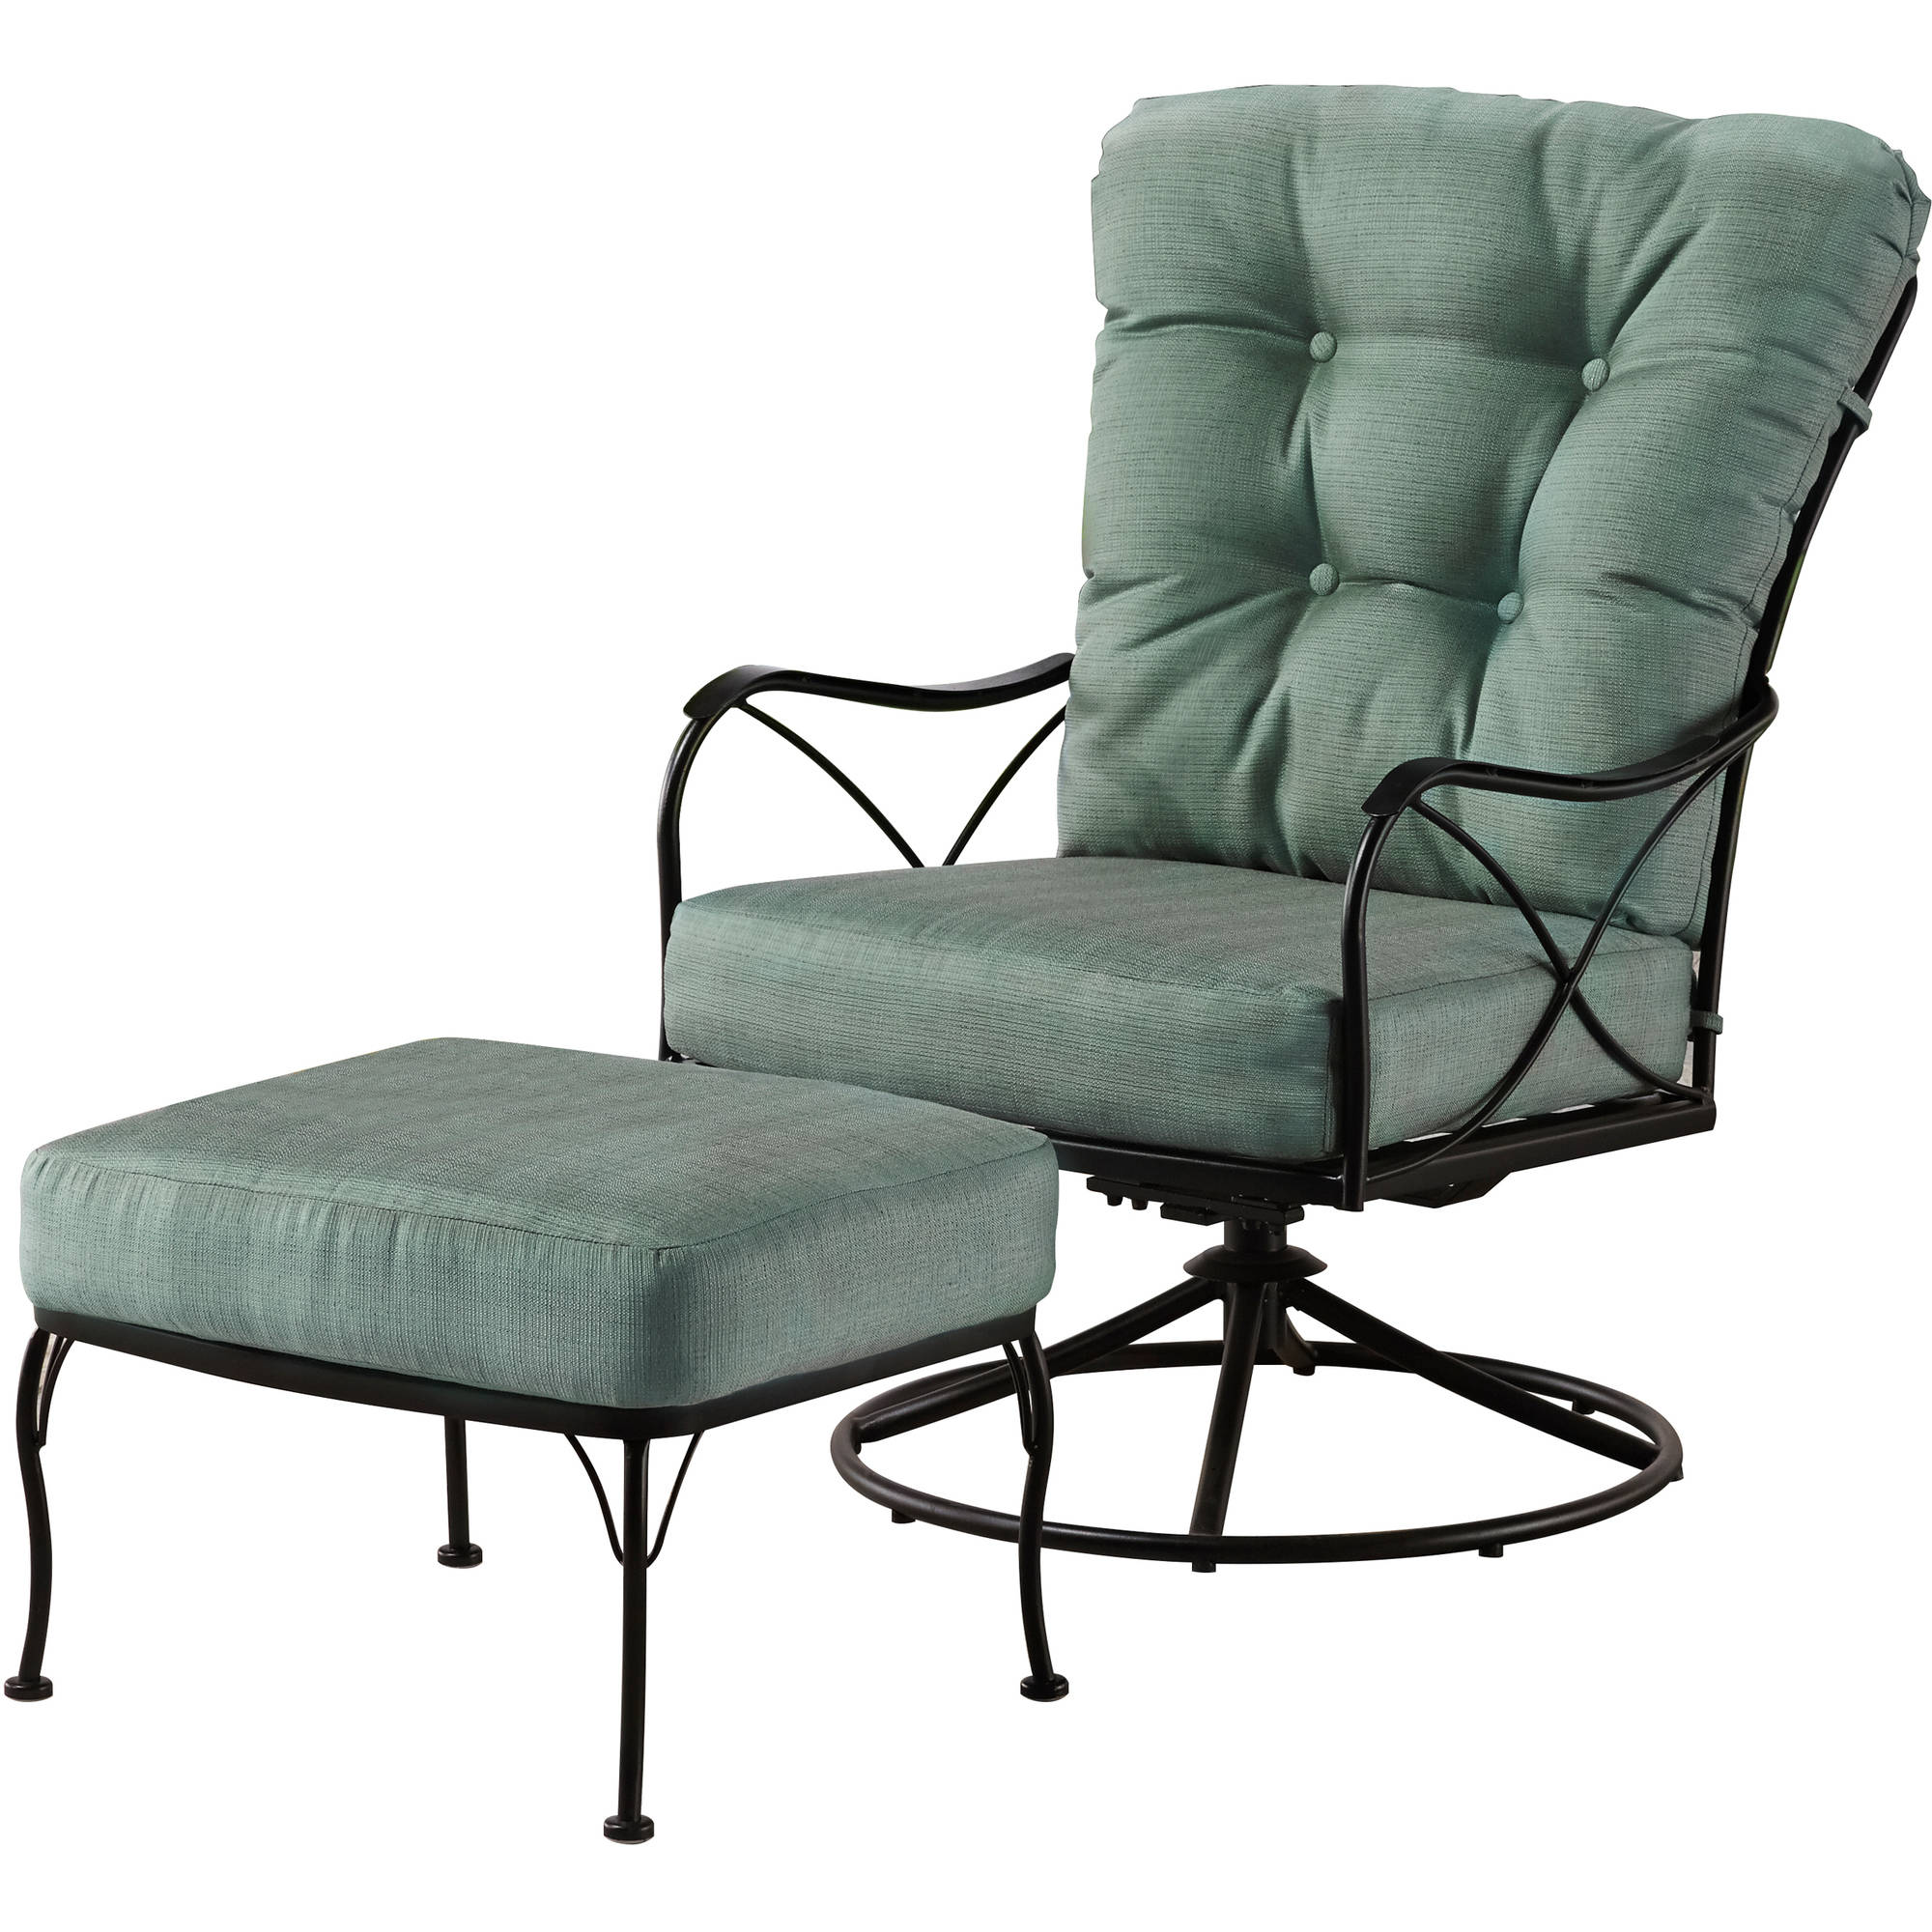 Outdoor Snuggle Chair Grand Traverse Chair And Half